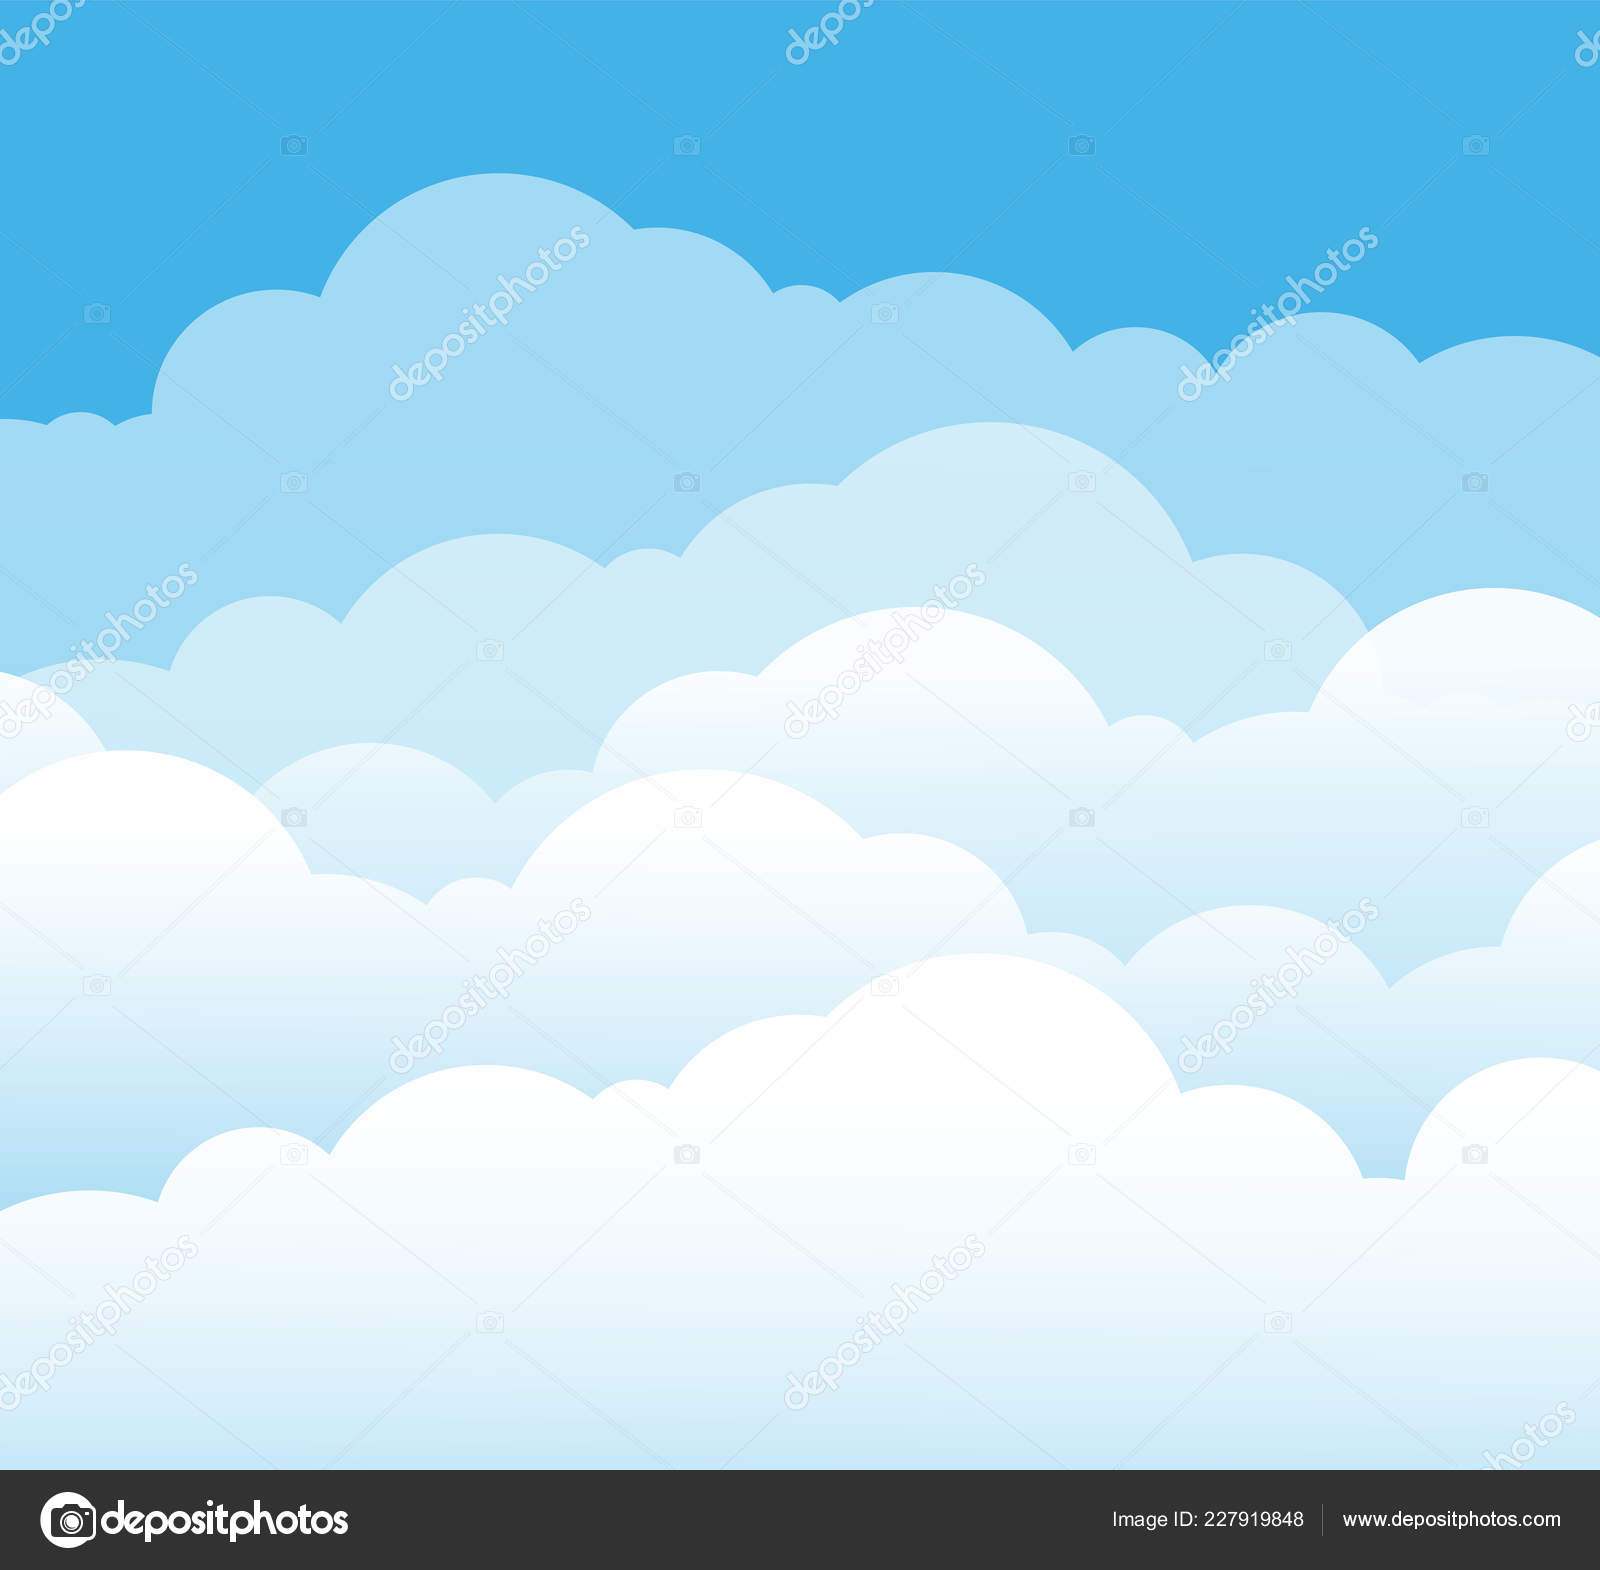 Sky And Clouds Cartoon Cloudy Background Heaven Scene With Blue